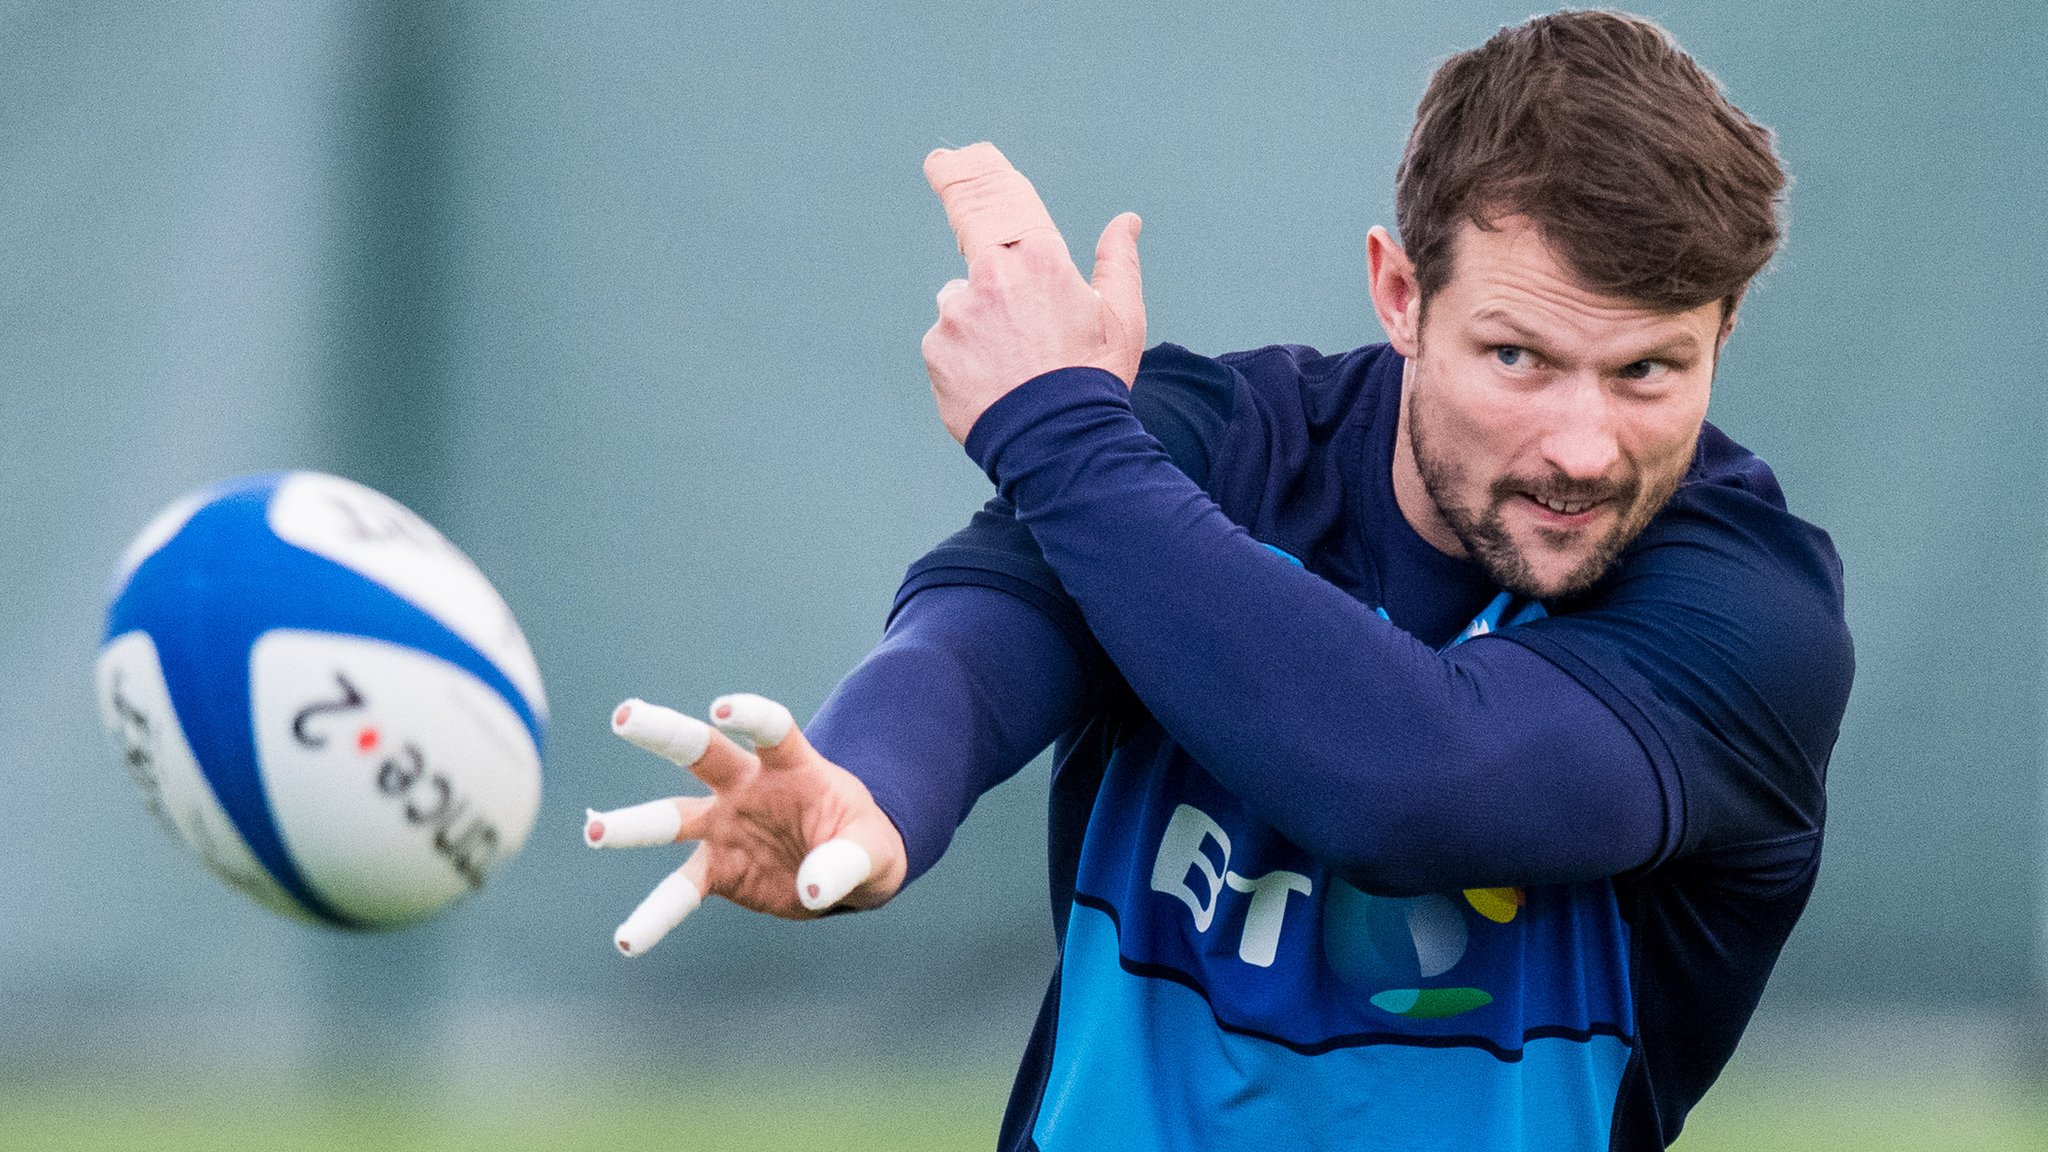 Horne replaces injured Russell at fly-half for Scotland v France